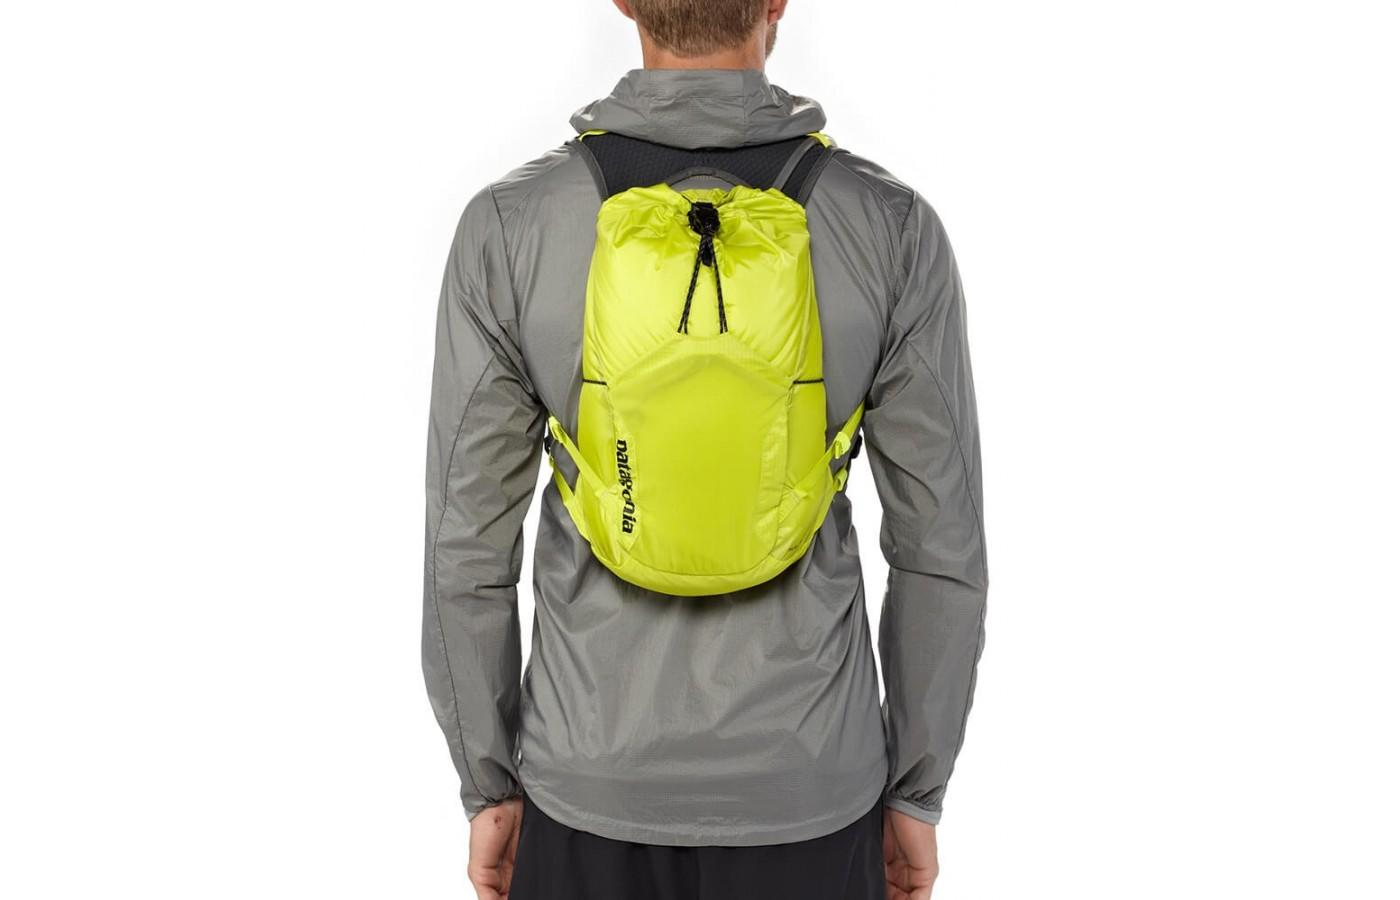 The Patagonia Fore Runner Vest 10L is made of durable ripstop nylon